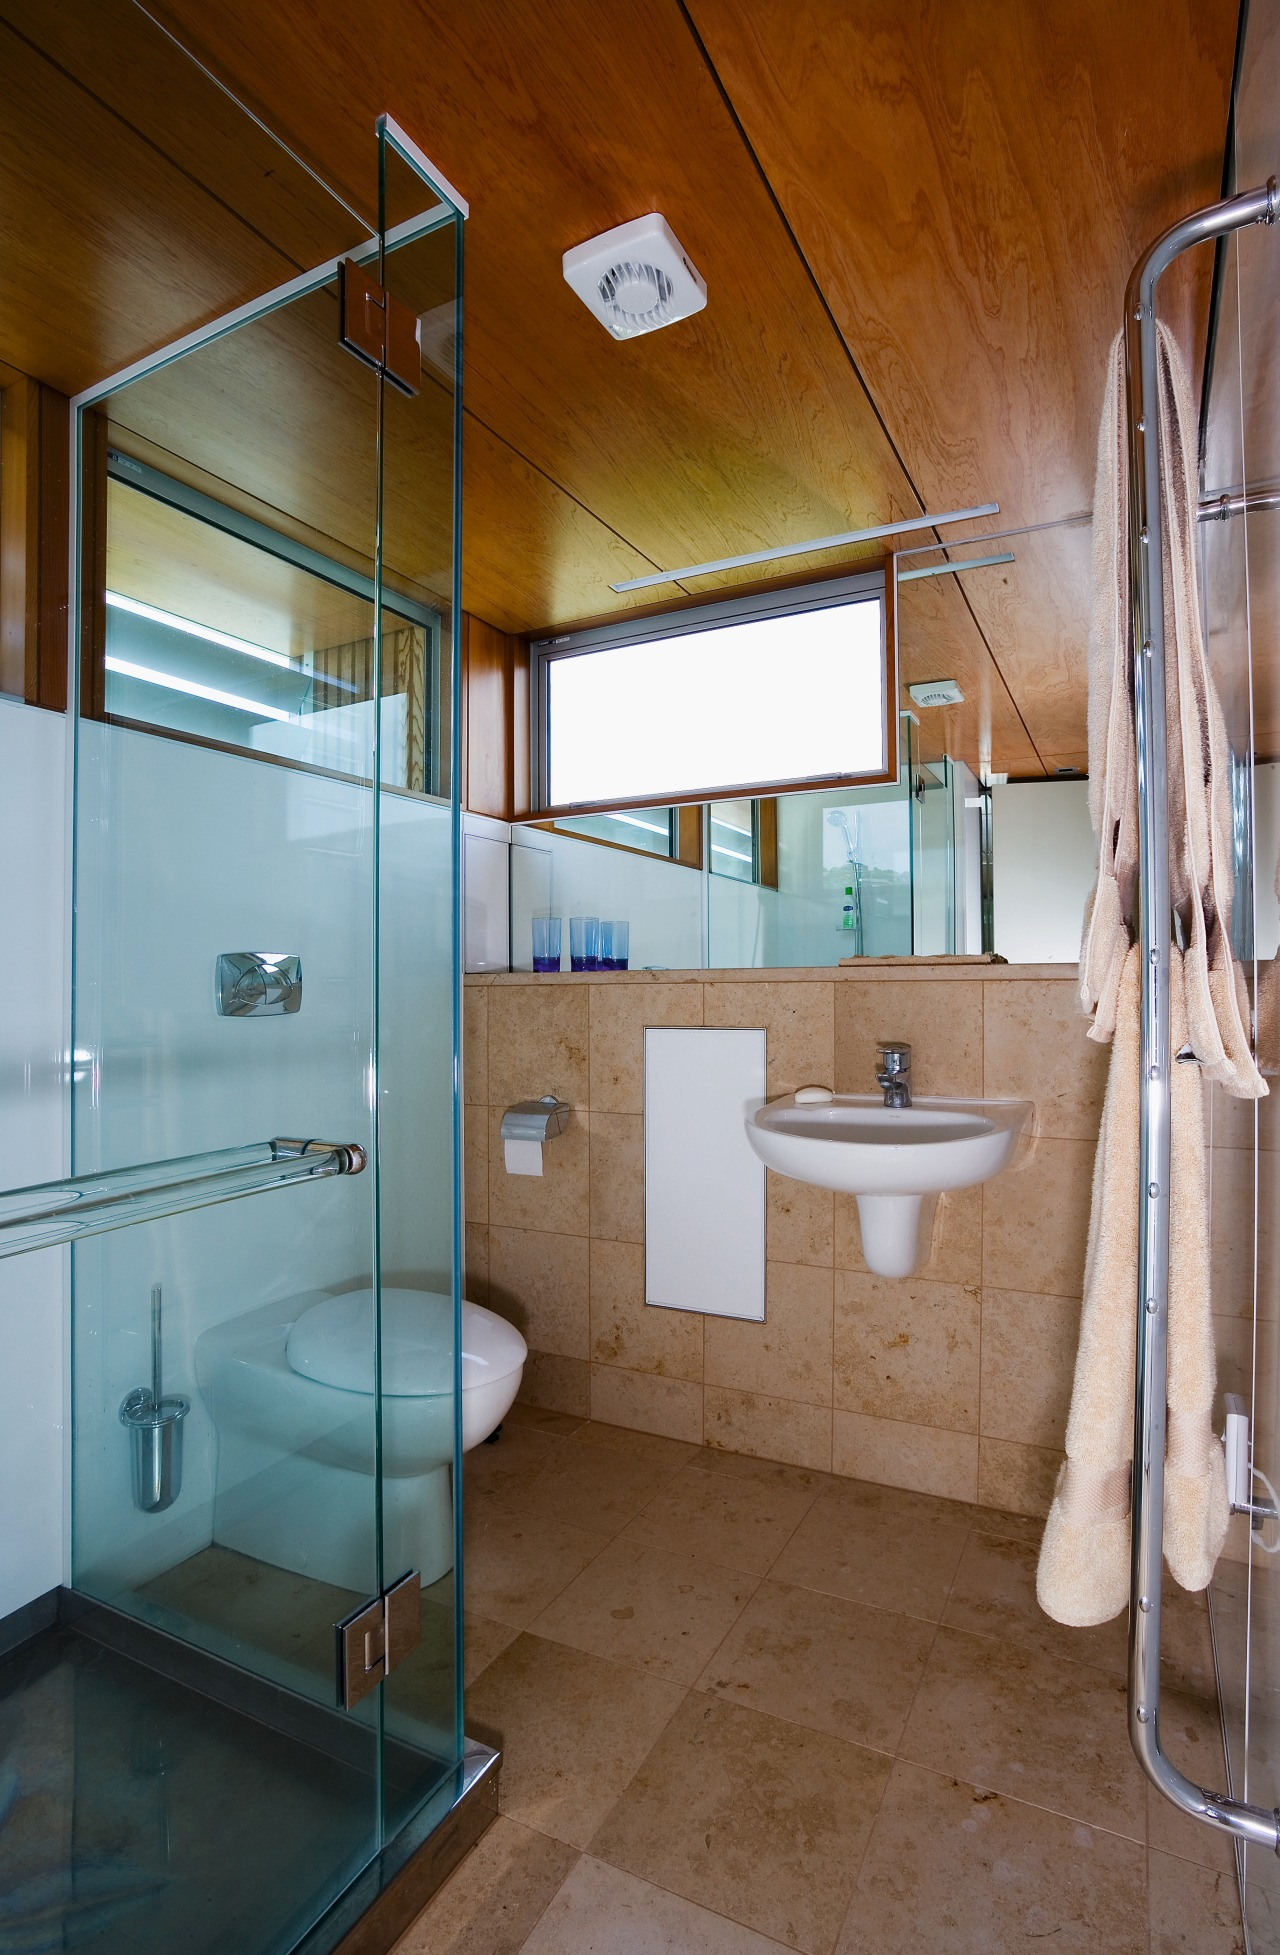 View of the master bathroom featuring tile dflooring architecture, bathroom, home, interior design, room, brown